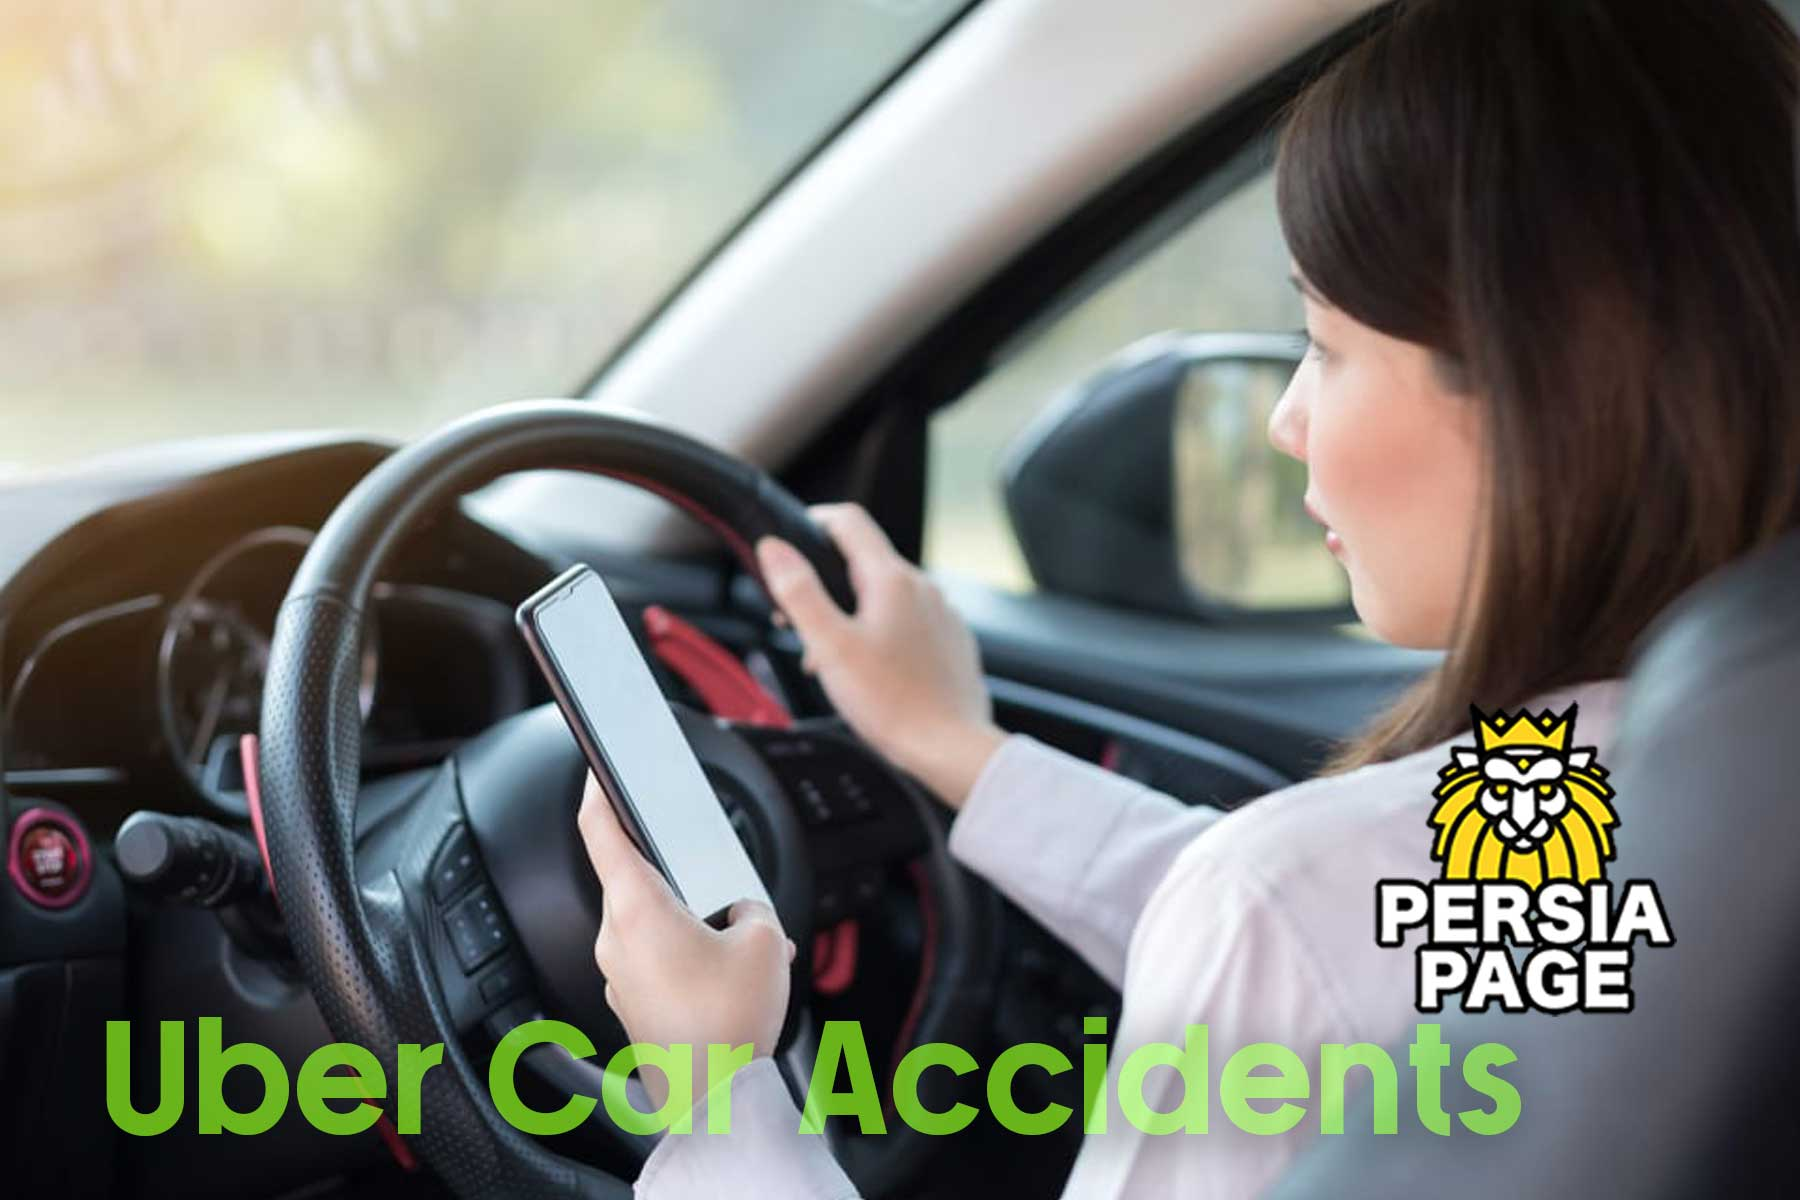 Uber Car Accidents